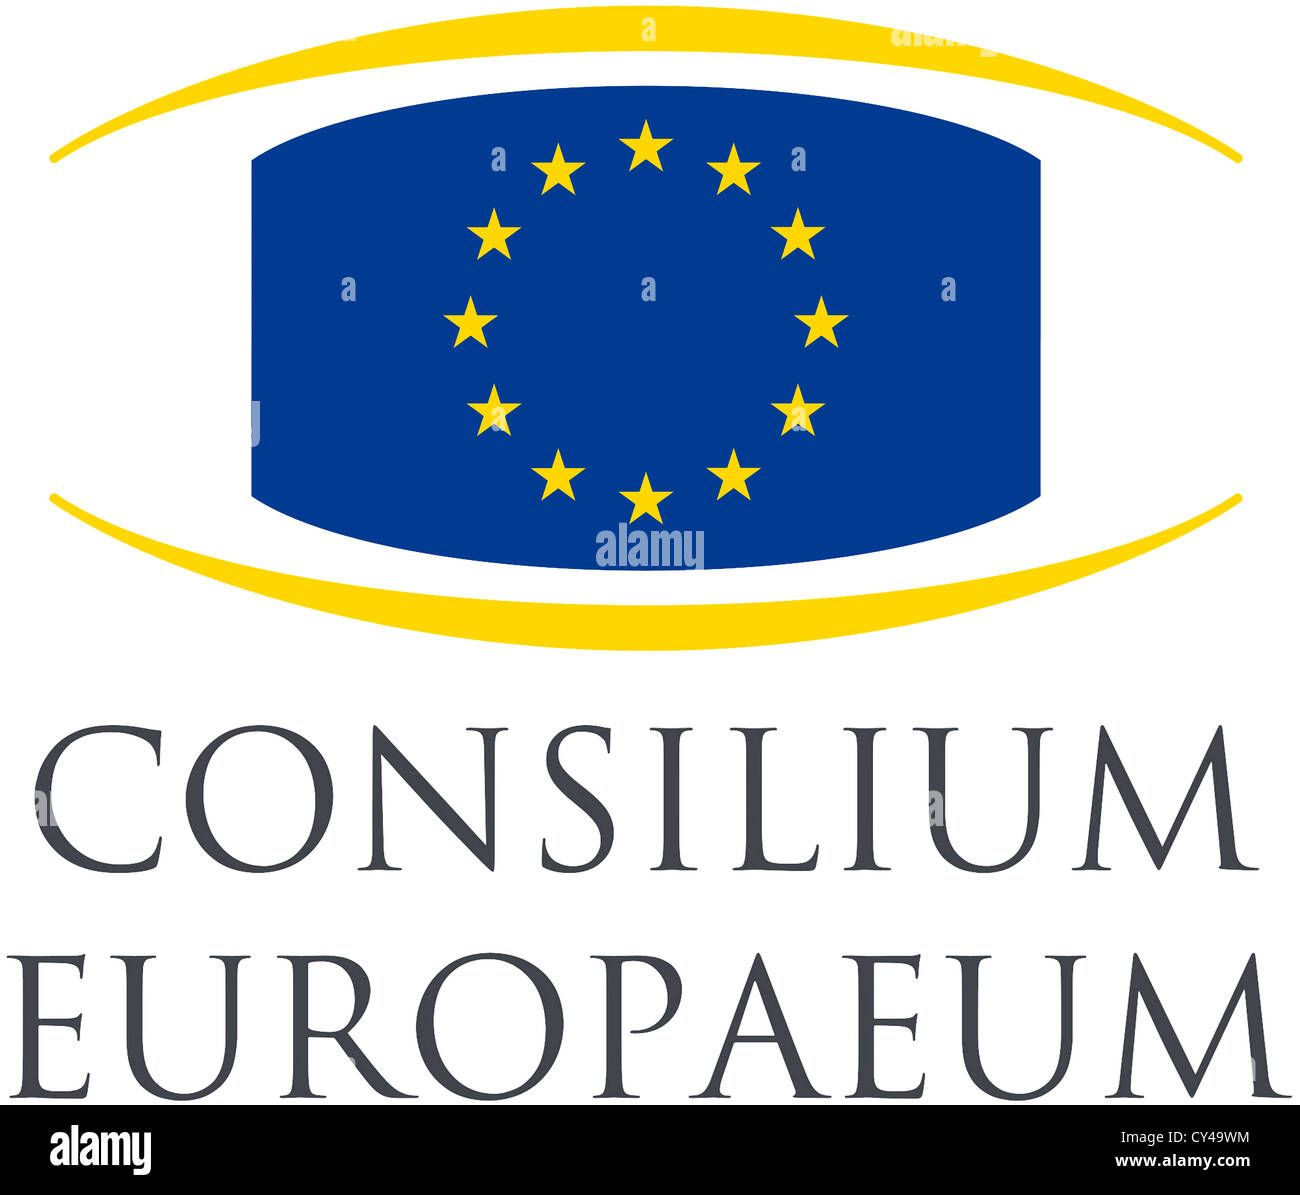 Logo of the Council of the European Union based in Brussels. - Stock Image